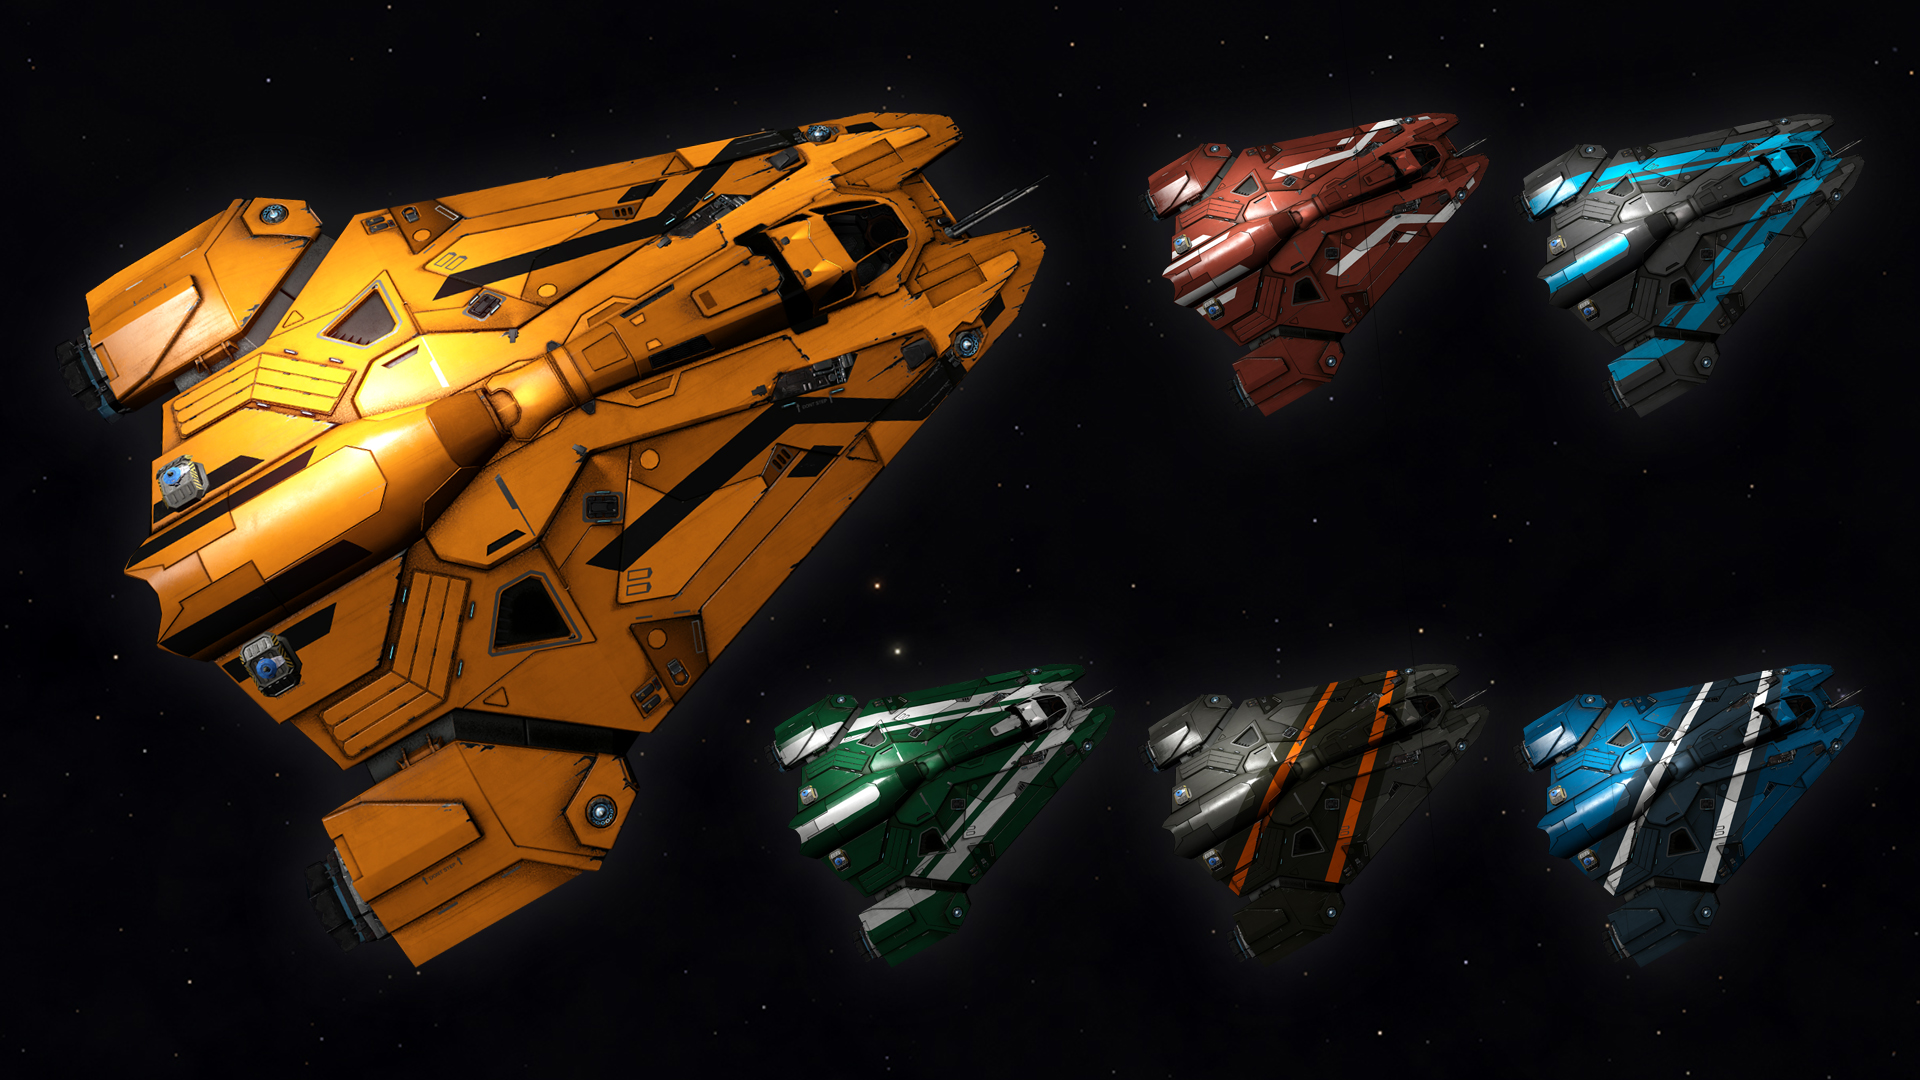 3158-elite-dangerous-commander-deluxe-edition-steam-gallery-1_1